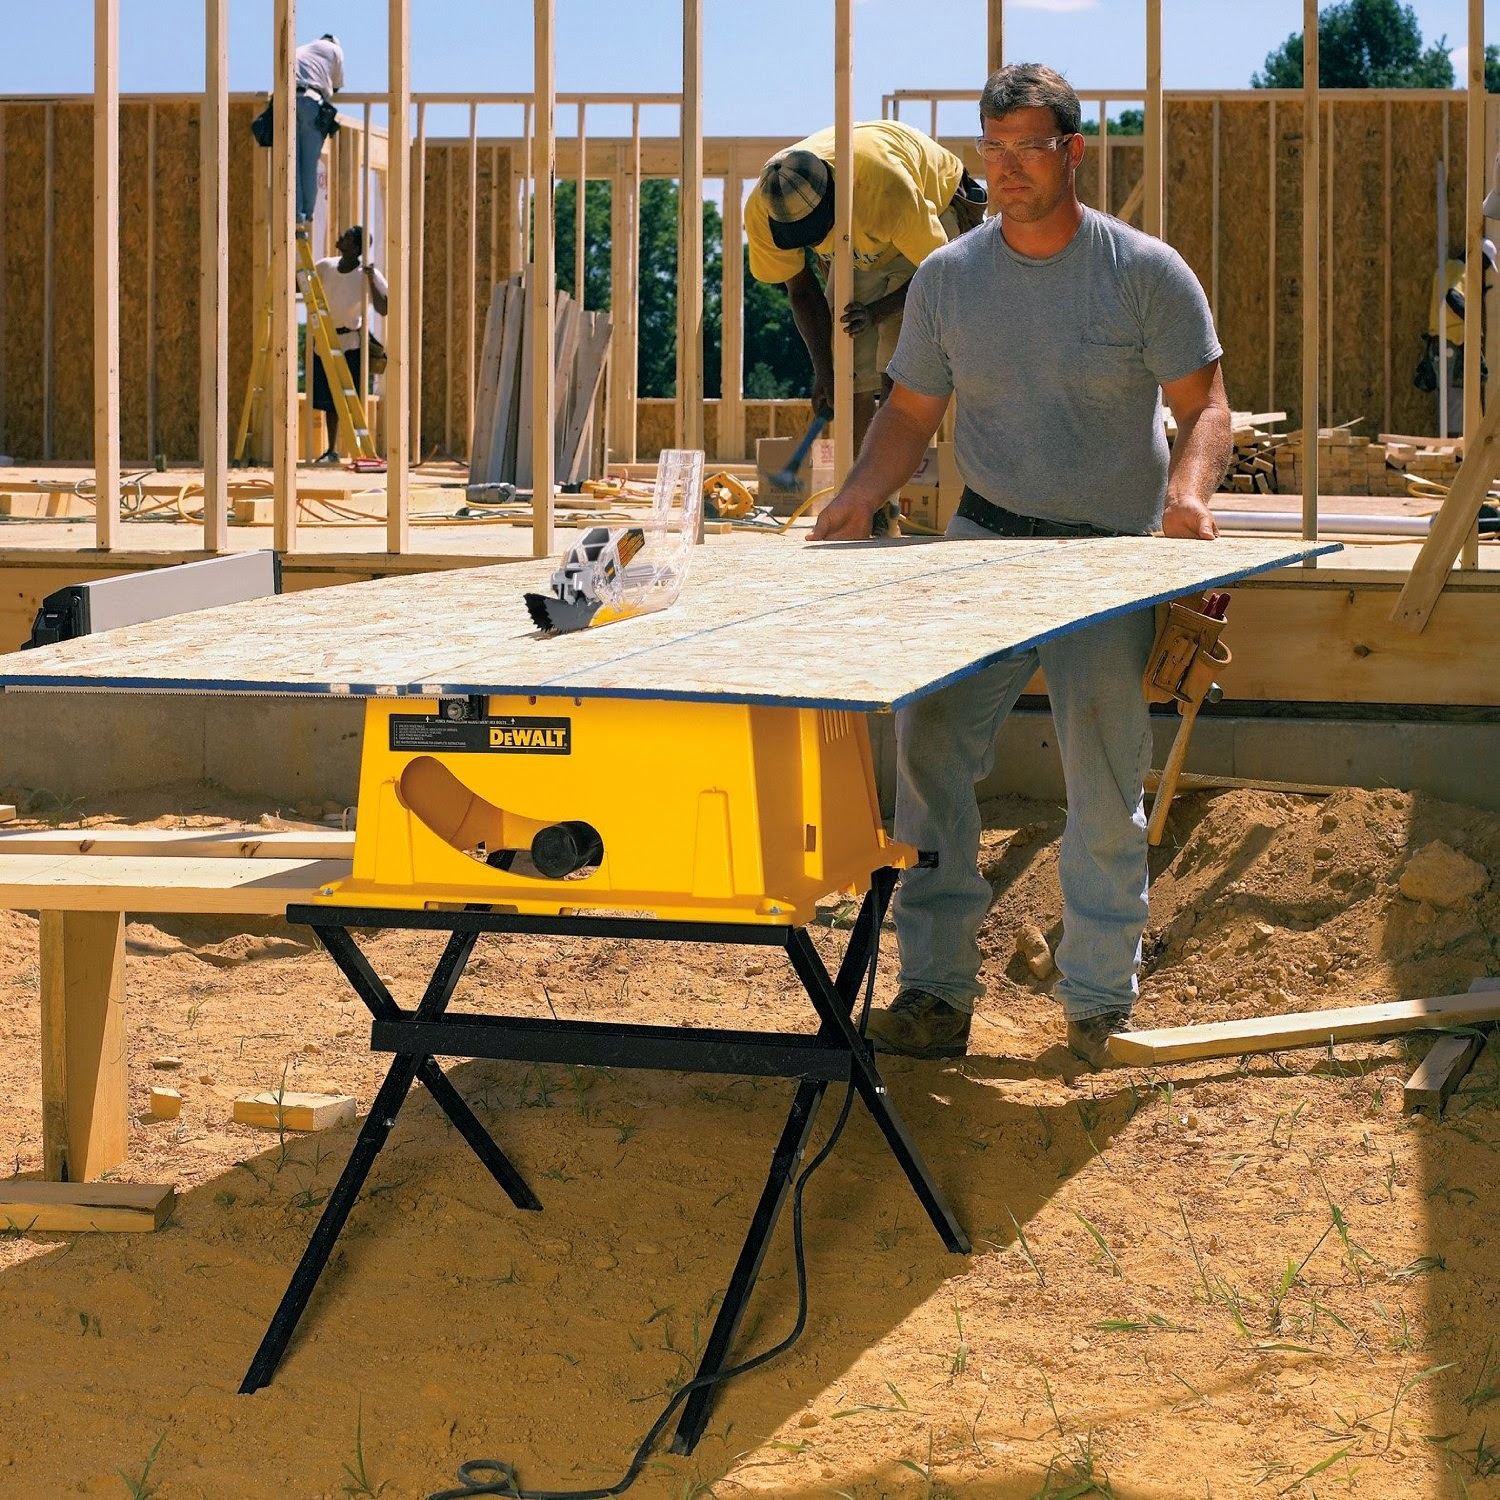 for projects woodworking mobile dewalt forum my table stand new saw